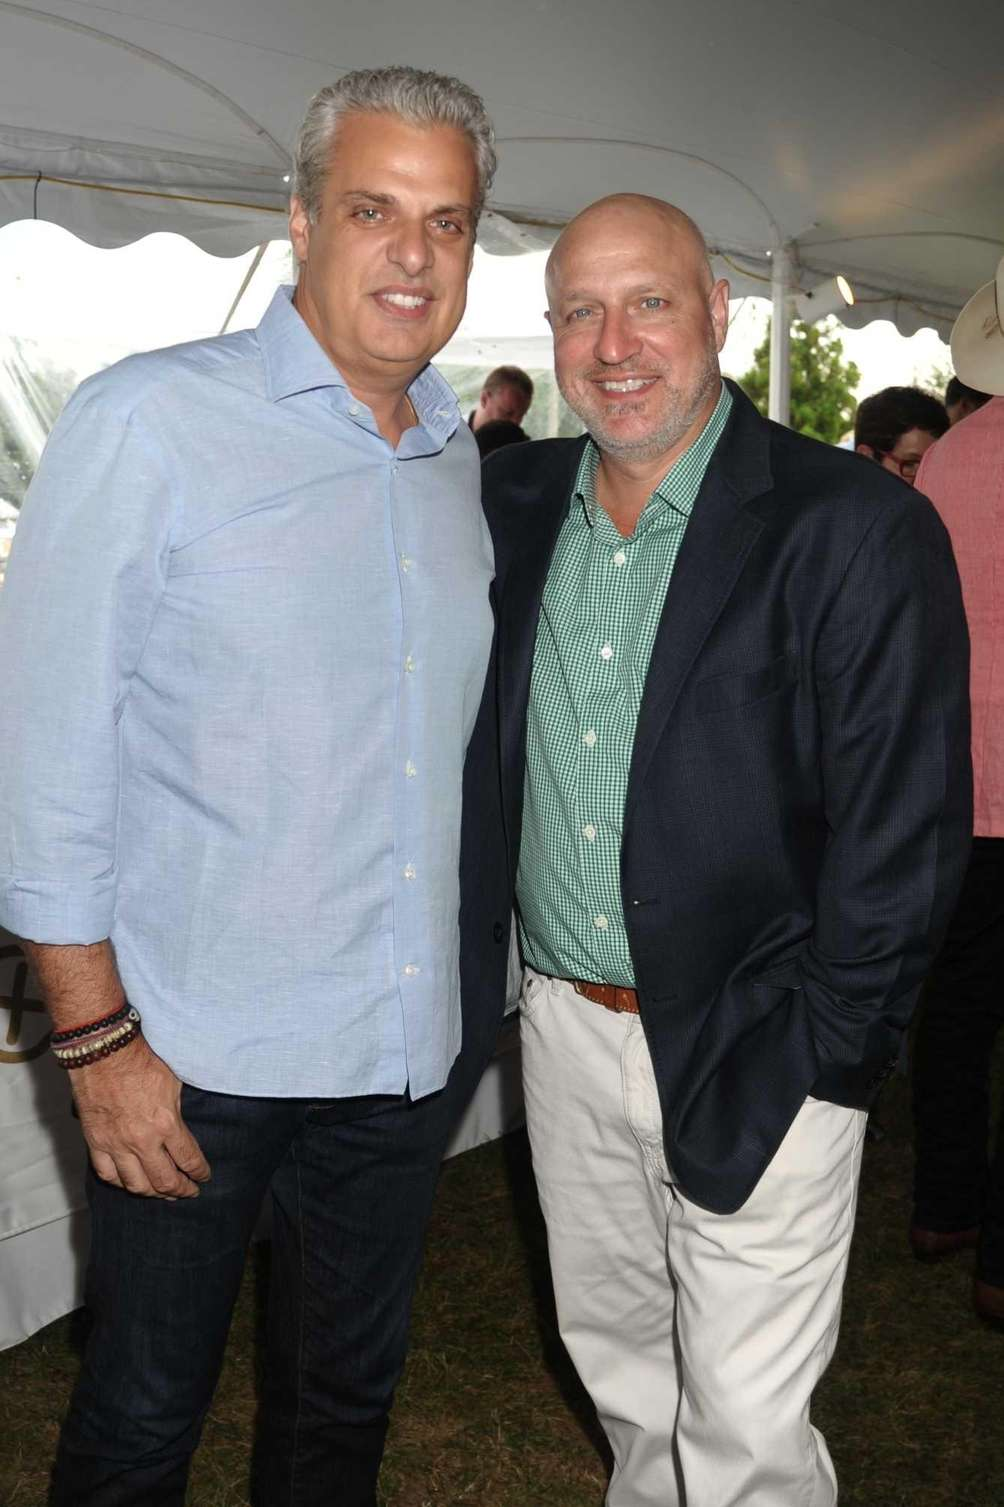 Chefs Eric Ripert and Tom Colicchio attend the